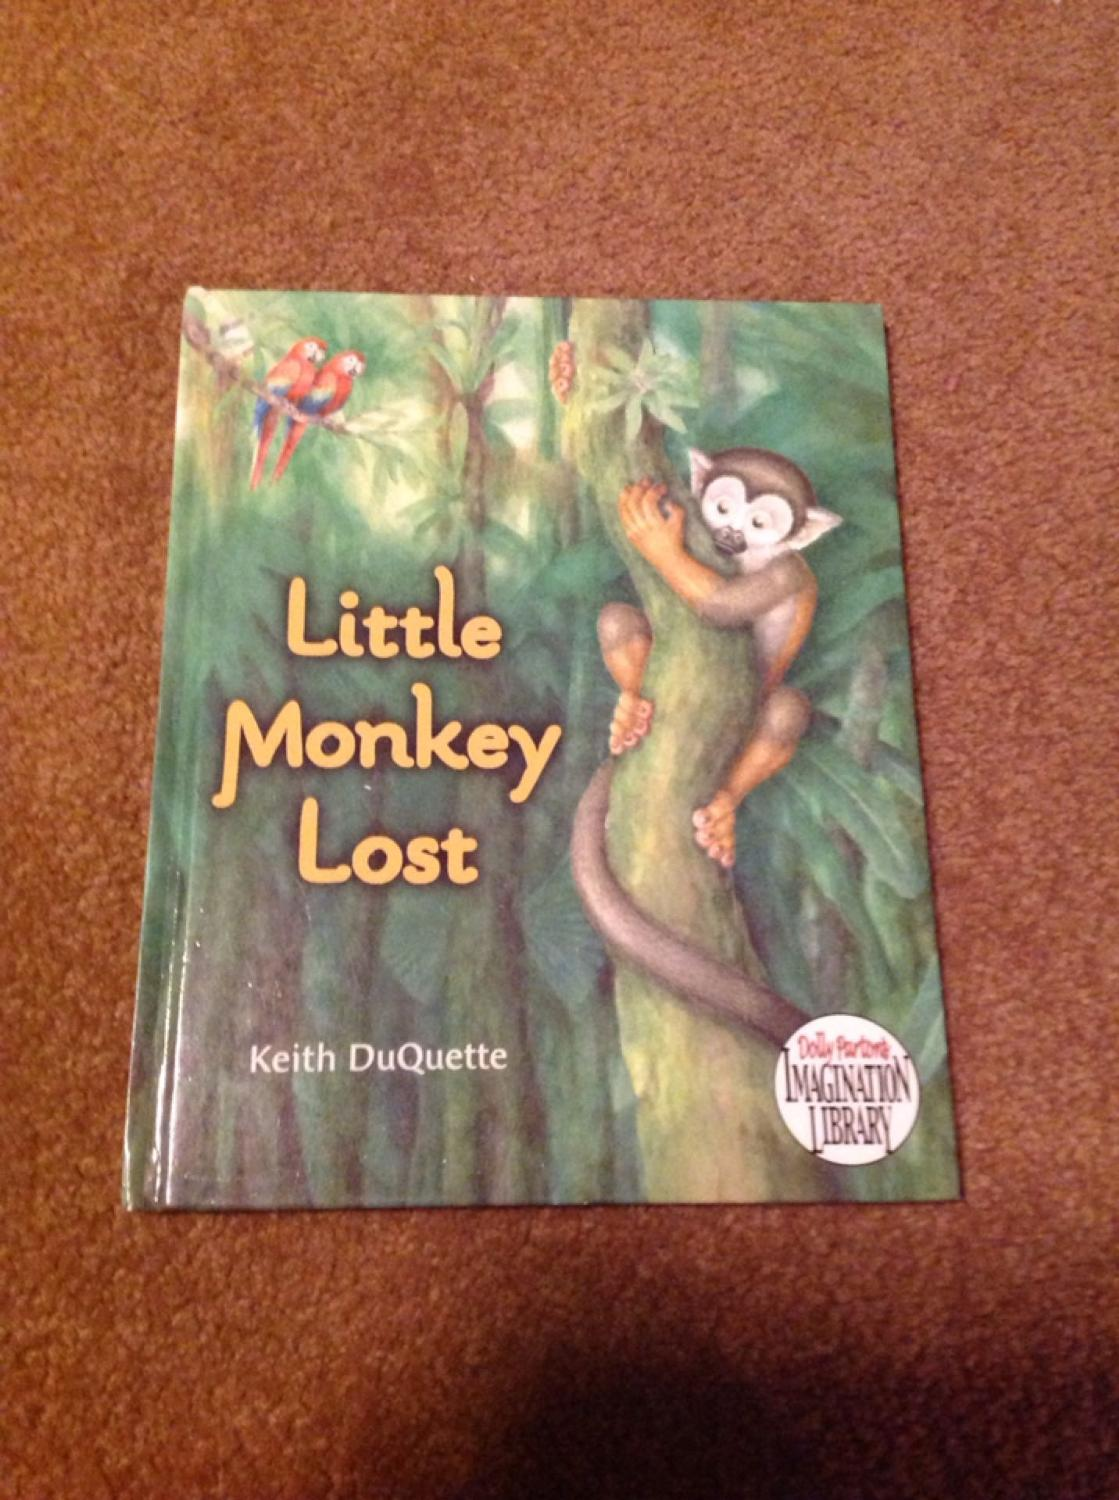 Little Monkey Lost  By Keith DuQuette  Dolly Partons Imagination Library   Hardback story book